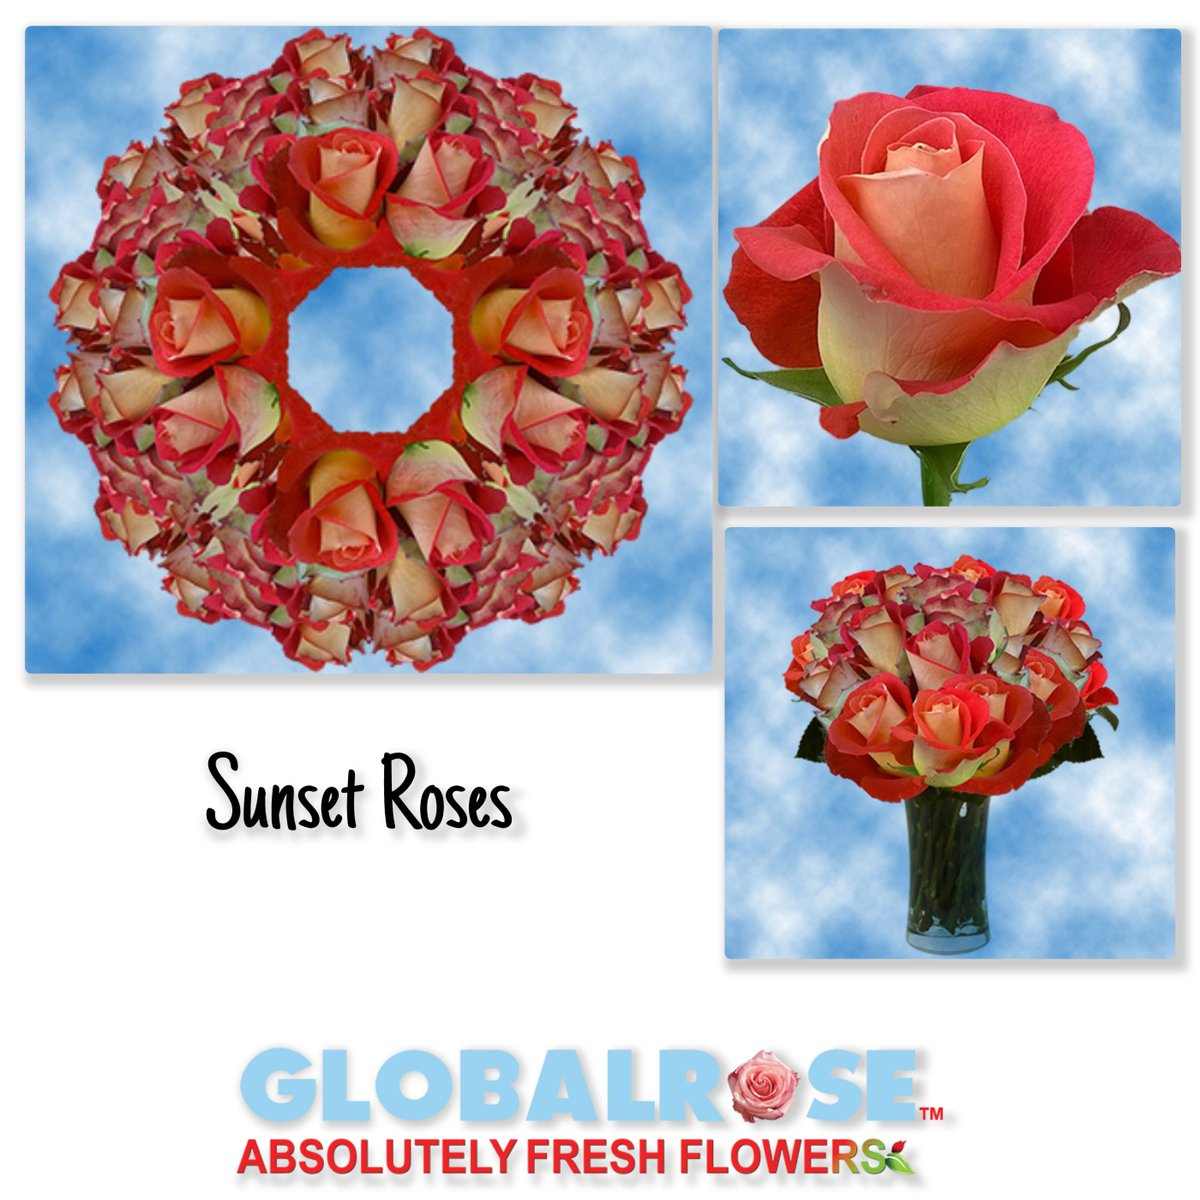 Global Rose On Twitter Beautiful Flowers And Their Meaning Visit